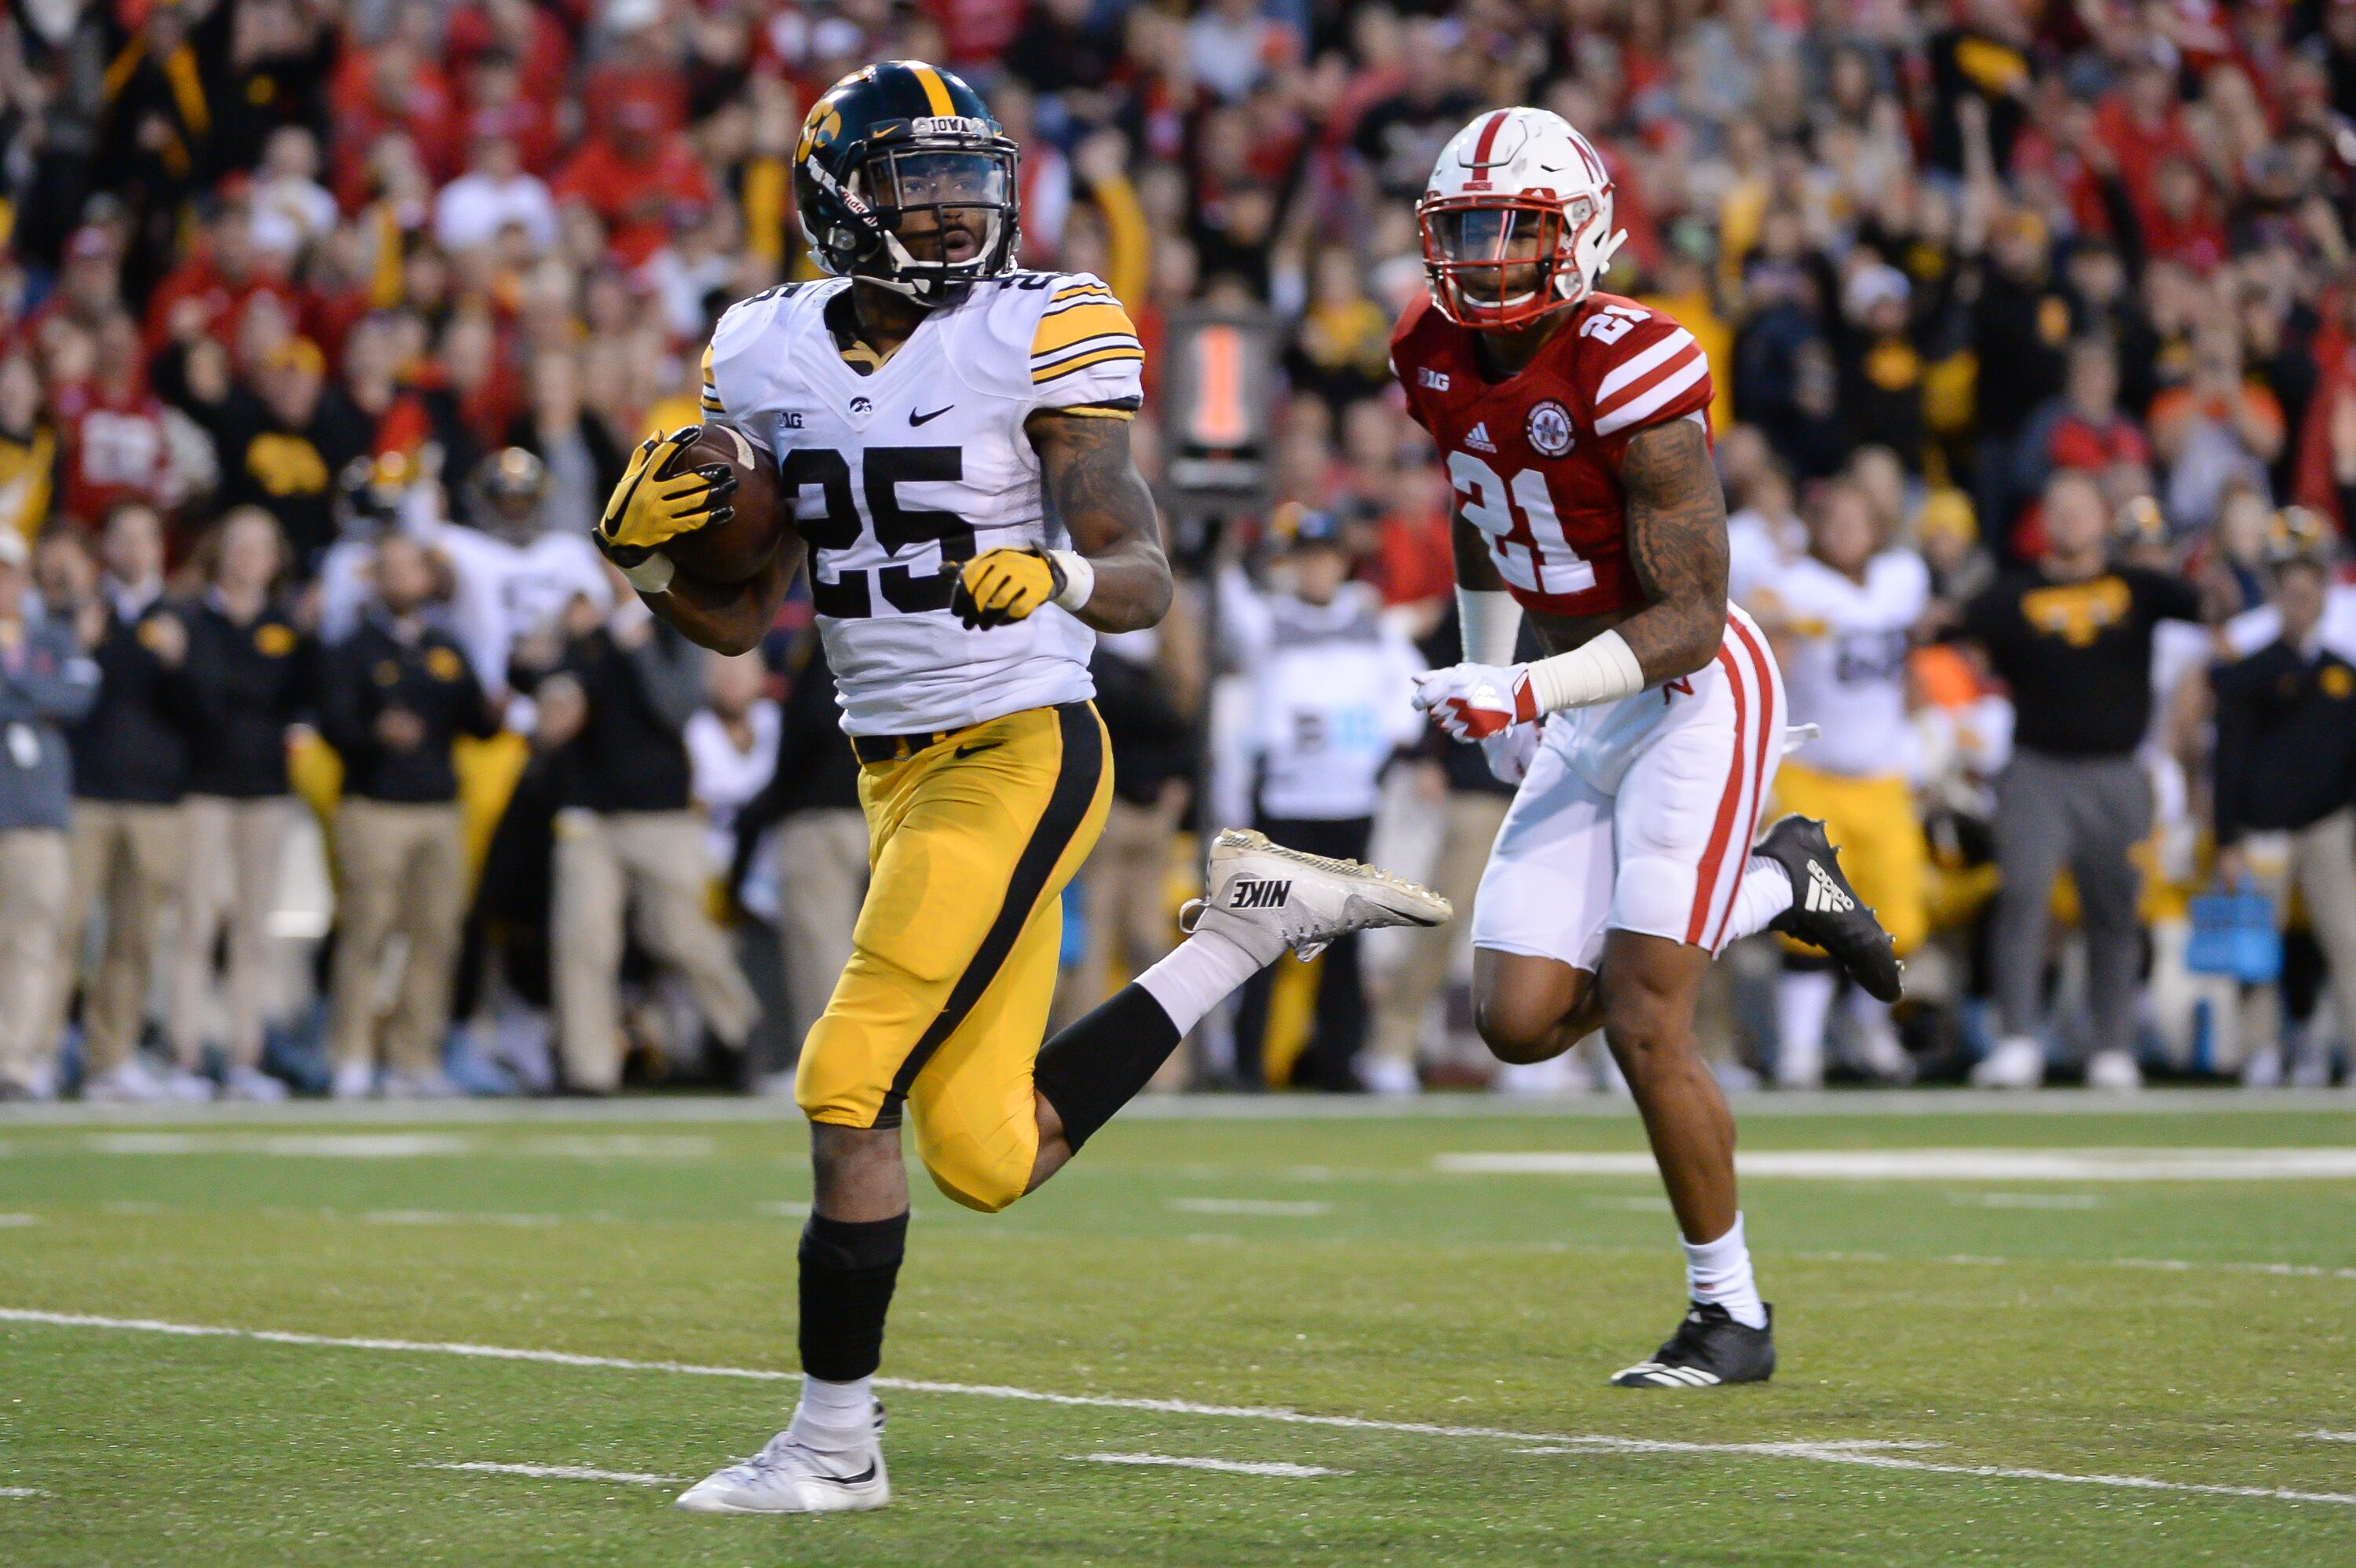 The State Of The Iowa Hawkeyes Running Back Situation For 2018